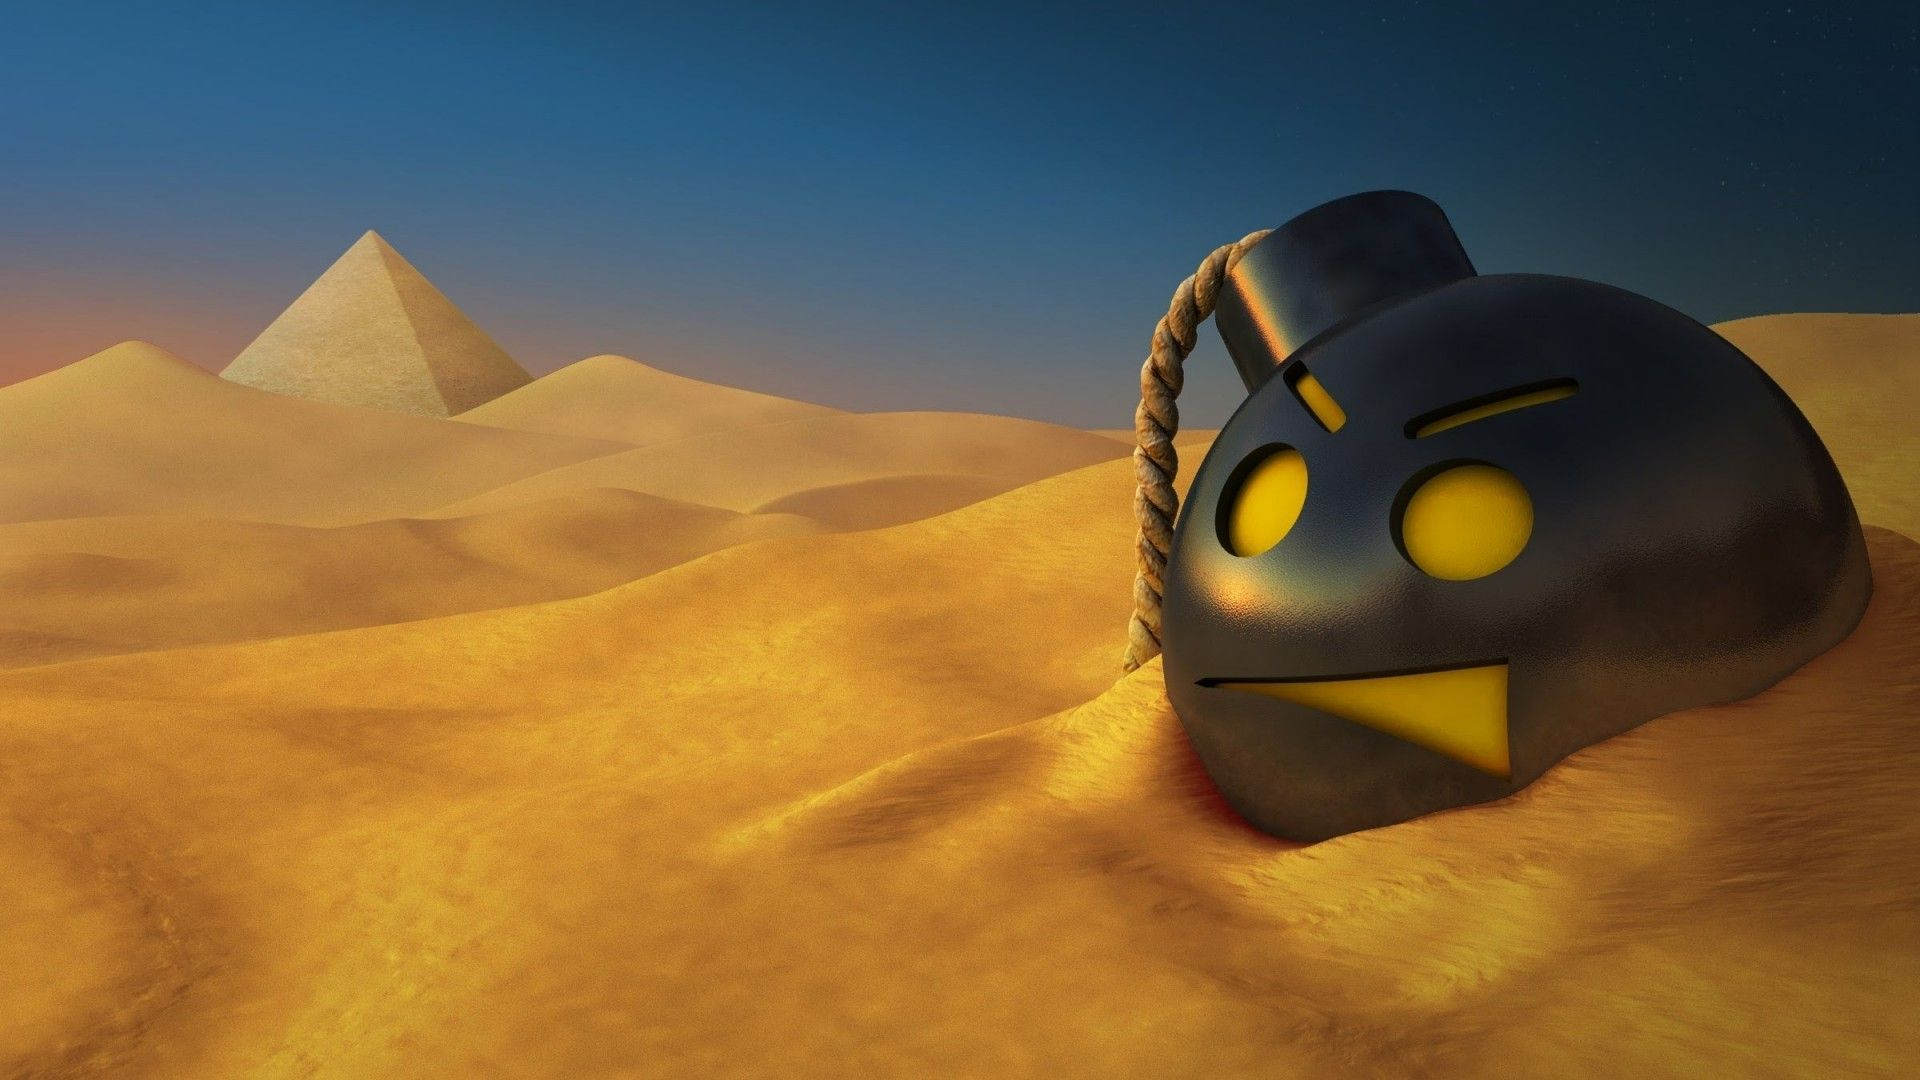 Cool Wallpaper 3d For Android Serious Sam Cool Wallpaper Cool 3d Wallpapers